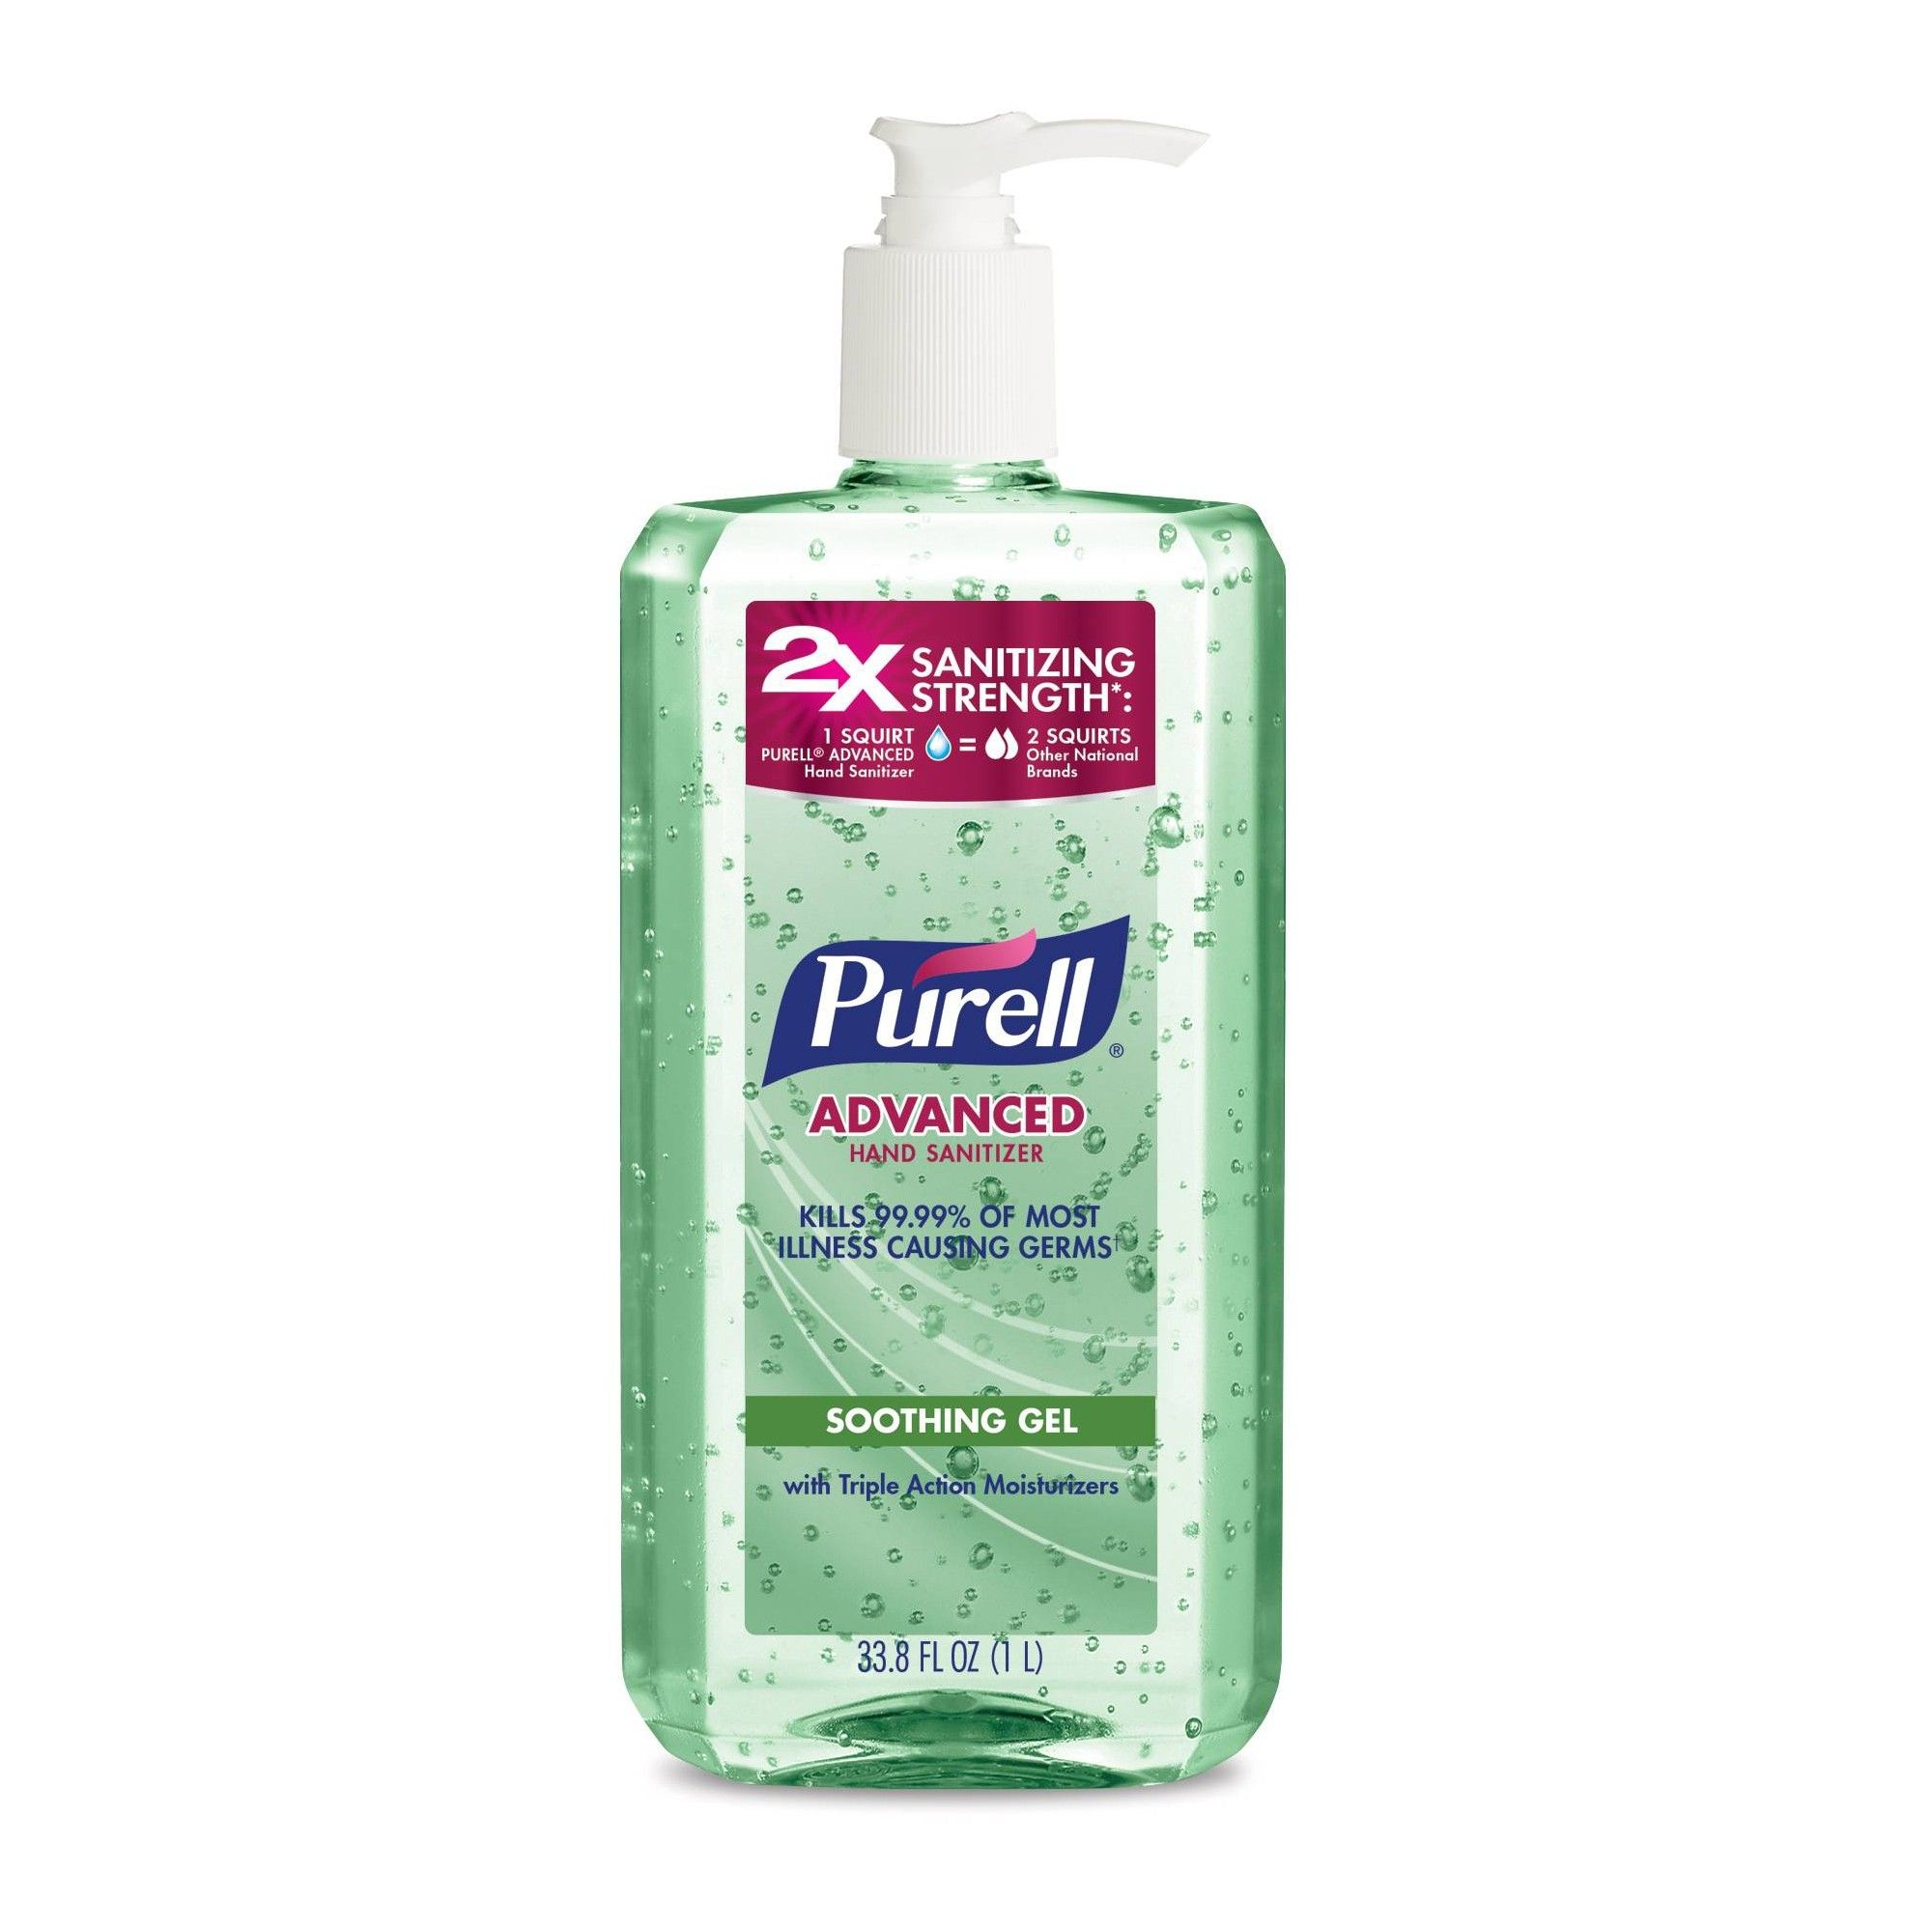 Purell Advanced Hand Sanitizer Green Certified Gel Pump Bottle